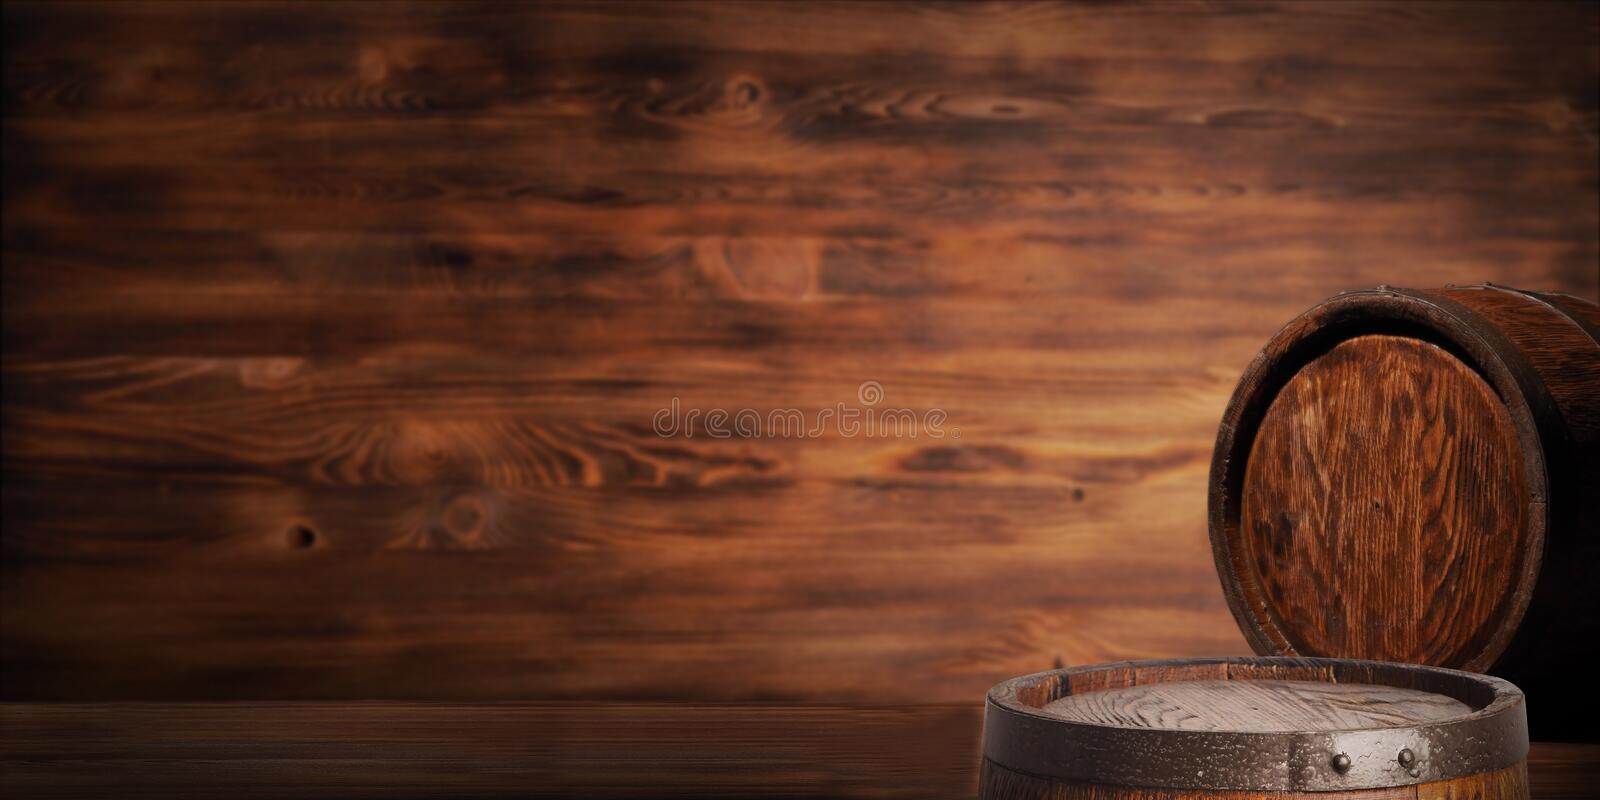 Rustic wooden barrel on a night background stock image